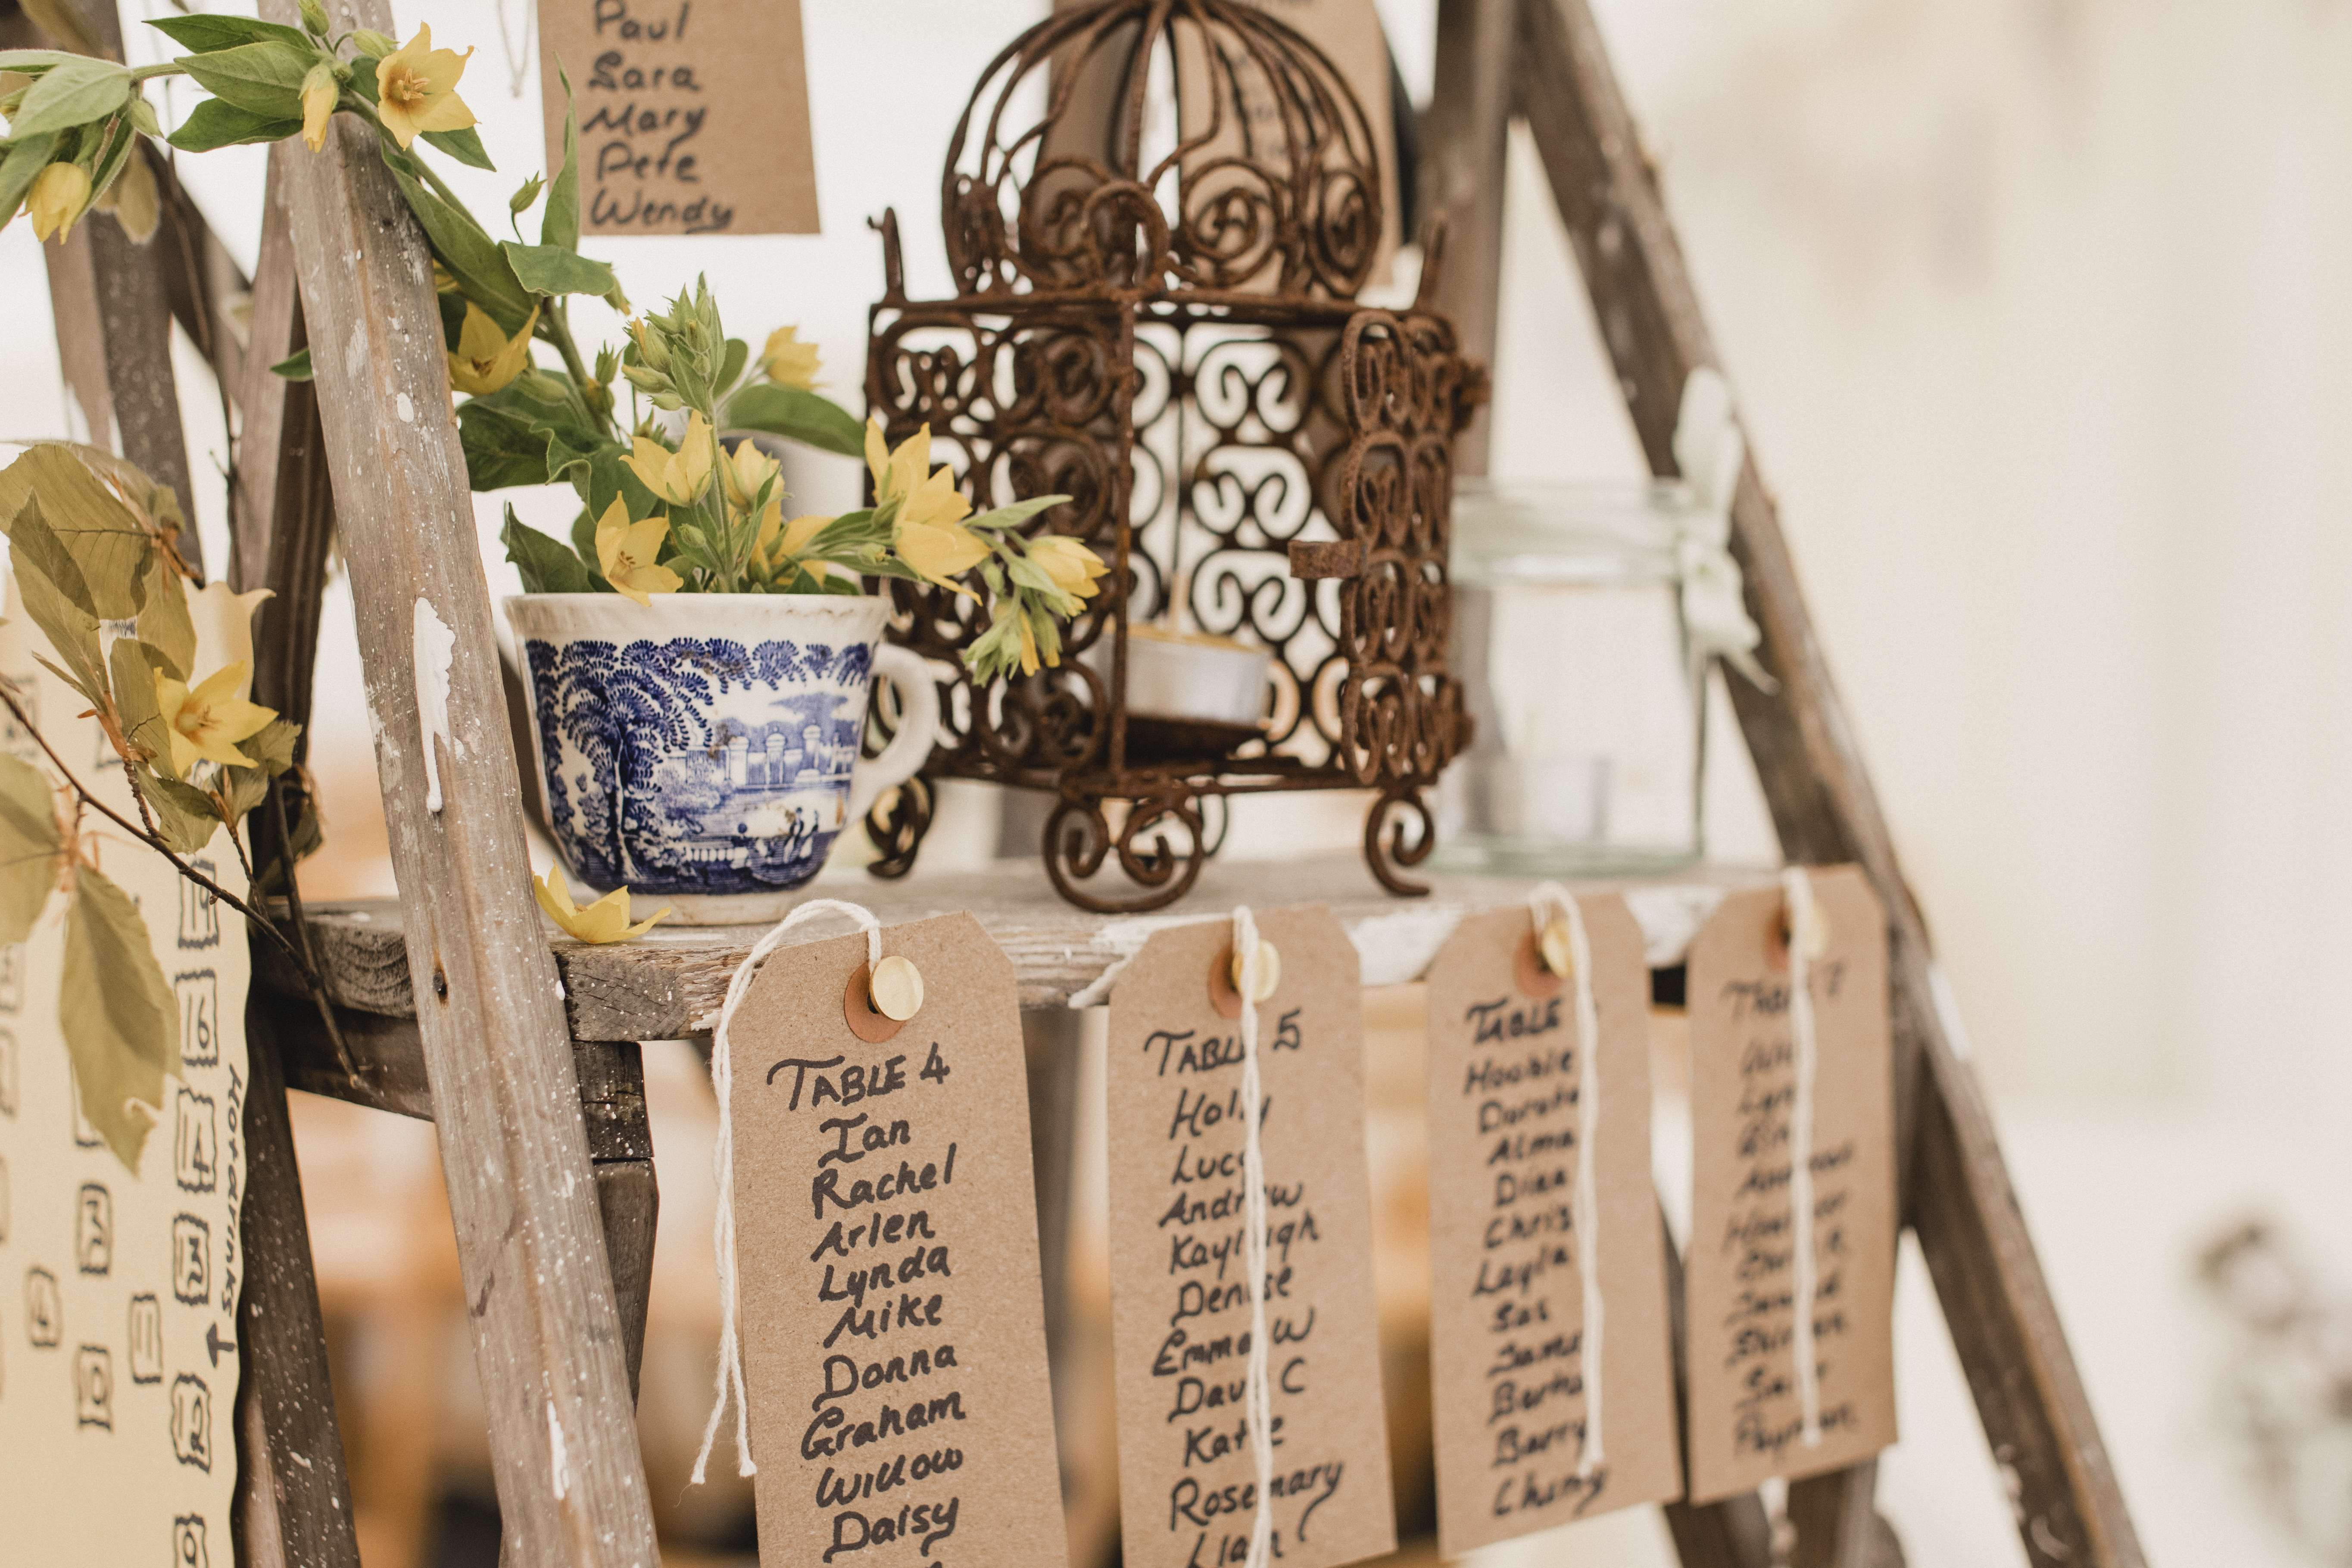 A close-up shot of a wooden step ladder at a wedding venue, place cards can be seen with a list of all the wedding guests and a seating plan.